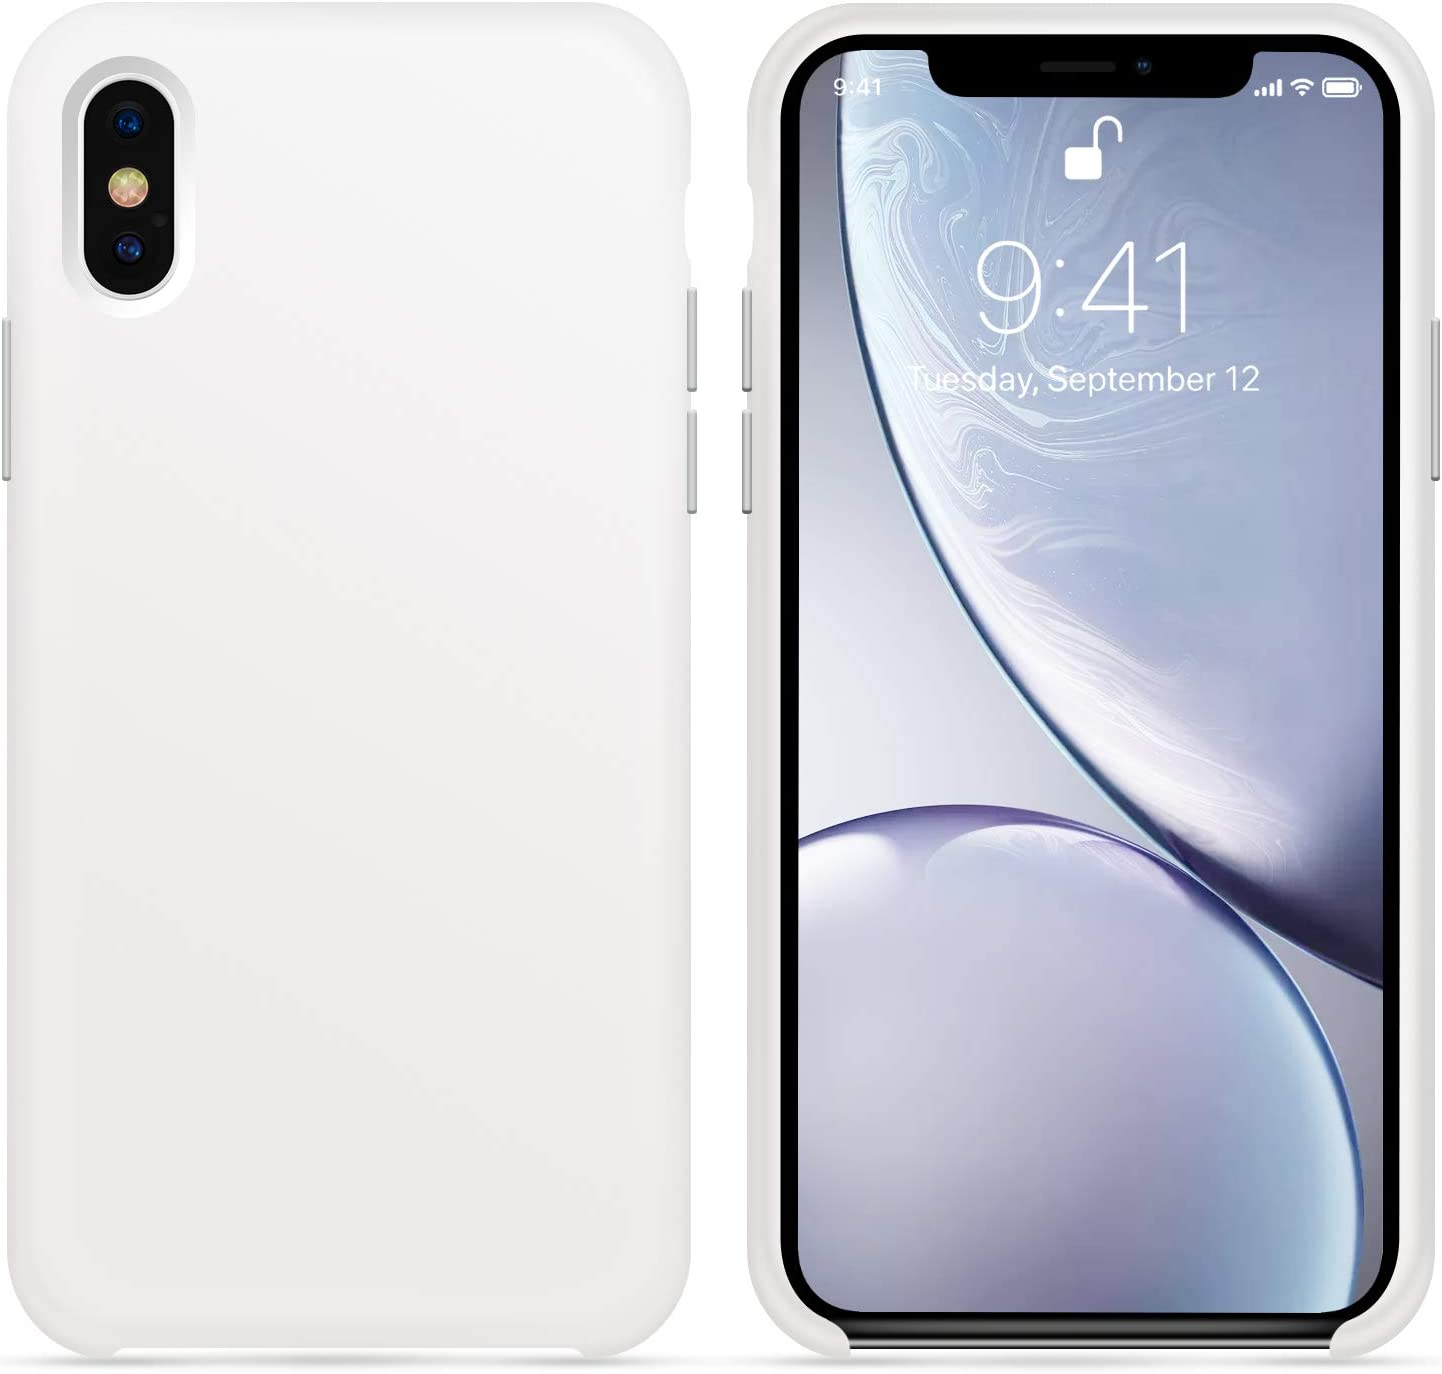 for iPhone X XS Case, OTOFLY [Silky and Soft Touch Series] Premium Soft Button Silicone Rubber Full-Body Protective Bumper Case Compatible with Apple iPhone X/iPhone Xs 5.8 inch, (White)